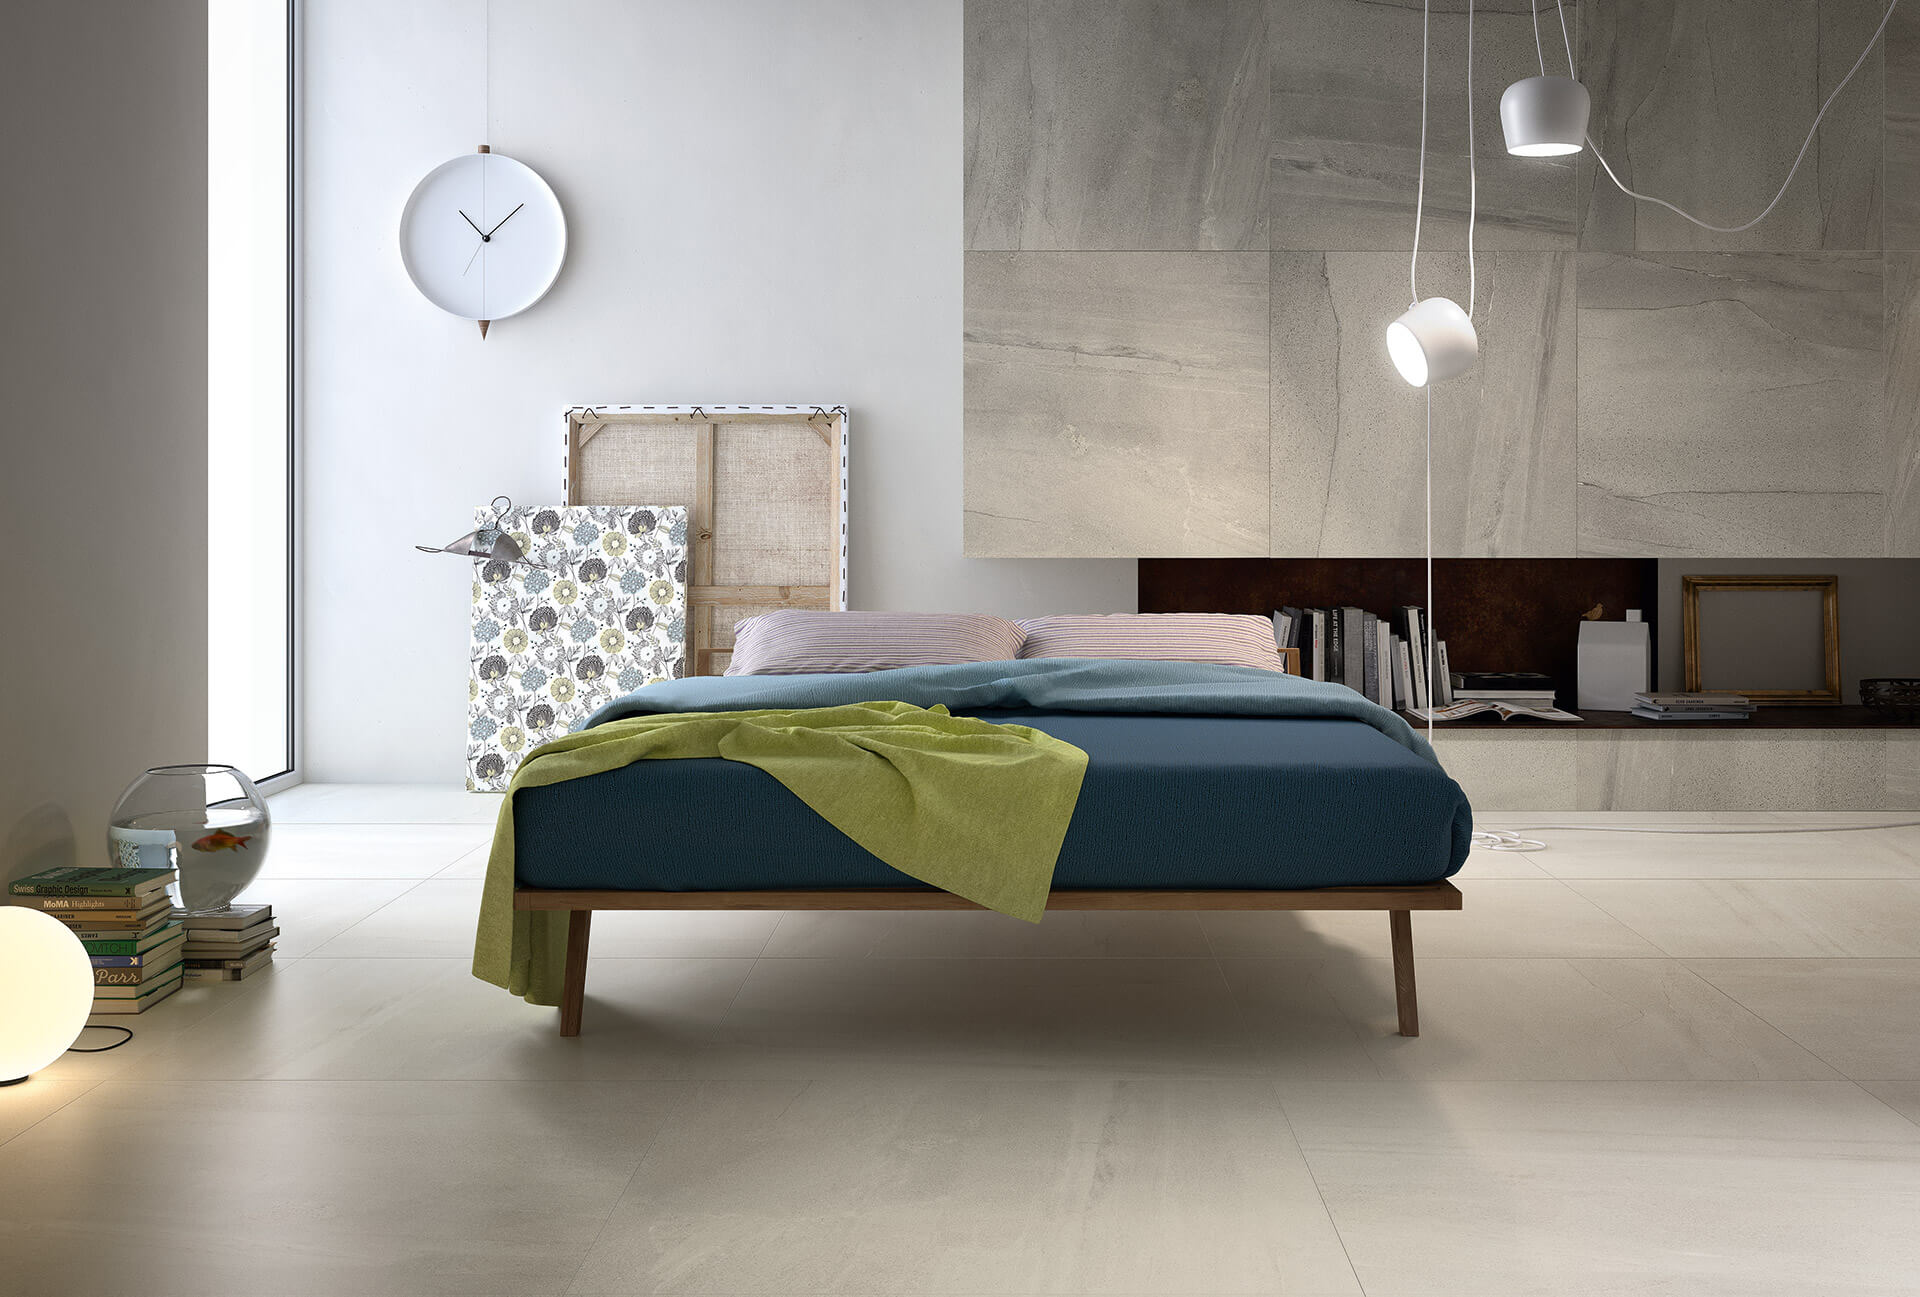 marble-floor-tiles-with-display-bed-granite-feature-wall